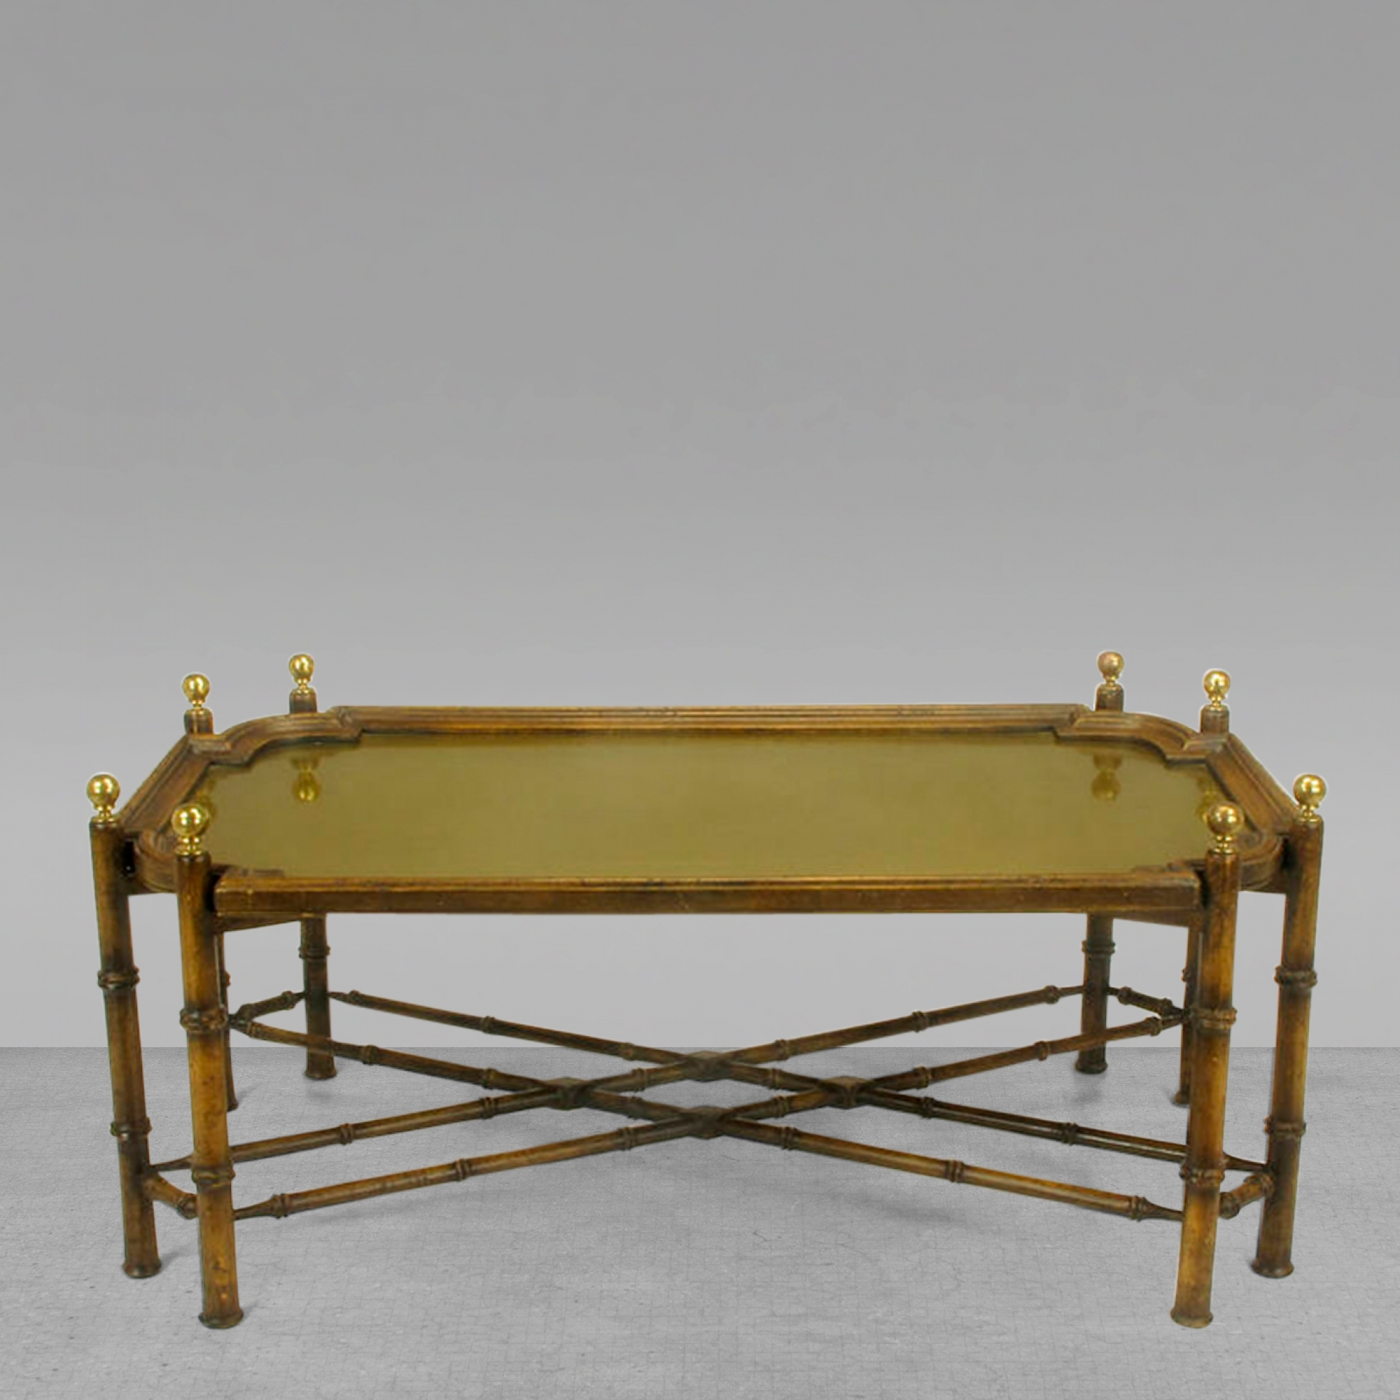 Chinese Chippendale Spanish Made Coffee Table With Removable Brass Intended For Spanish Coffee Tables (View 7 of 30)